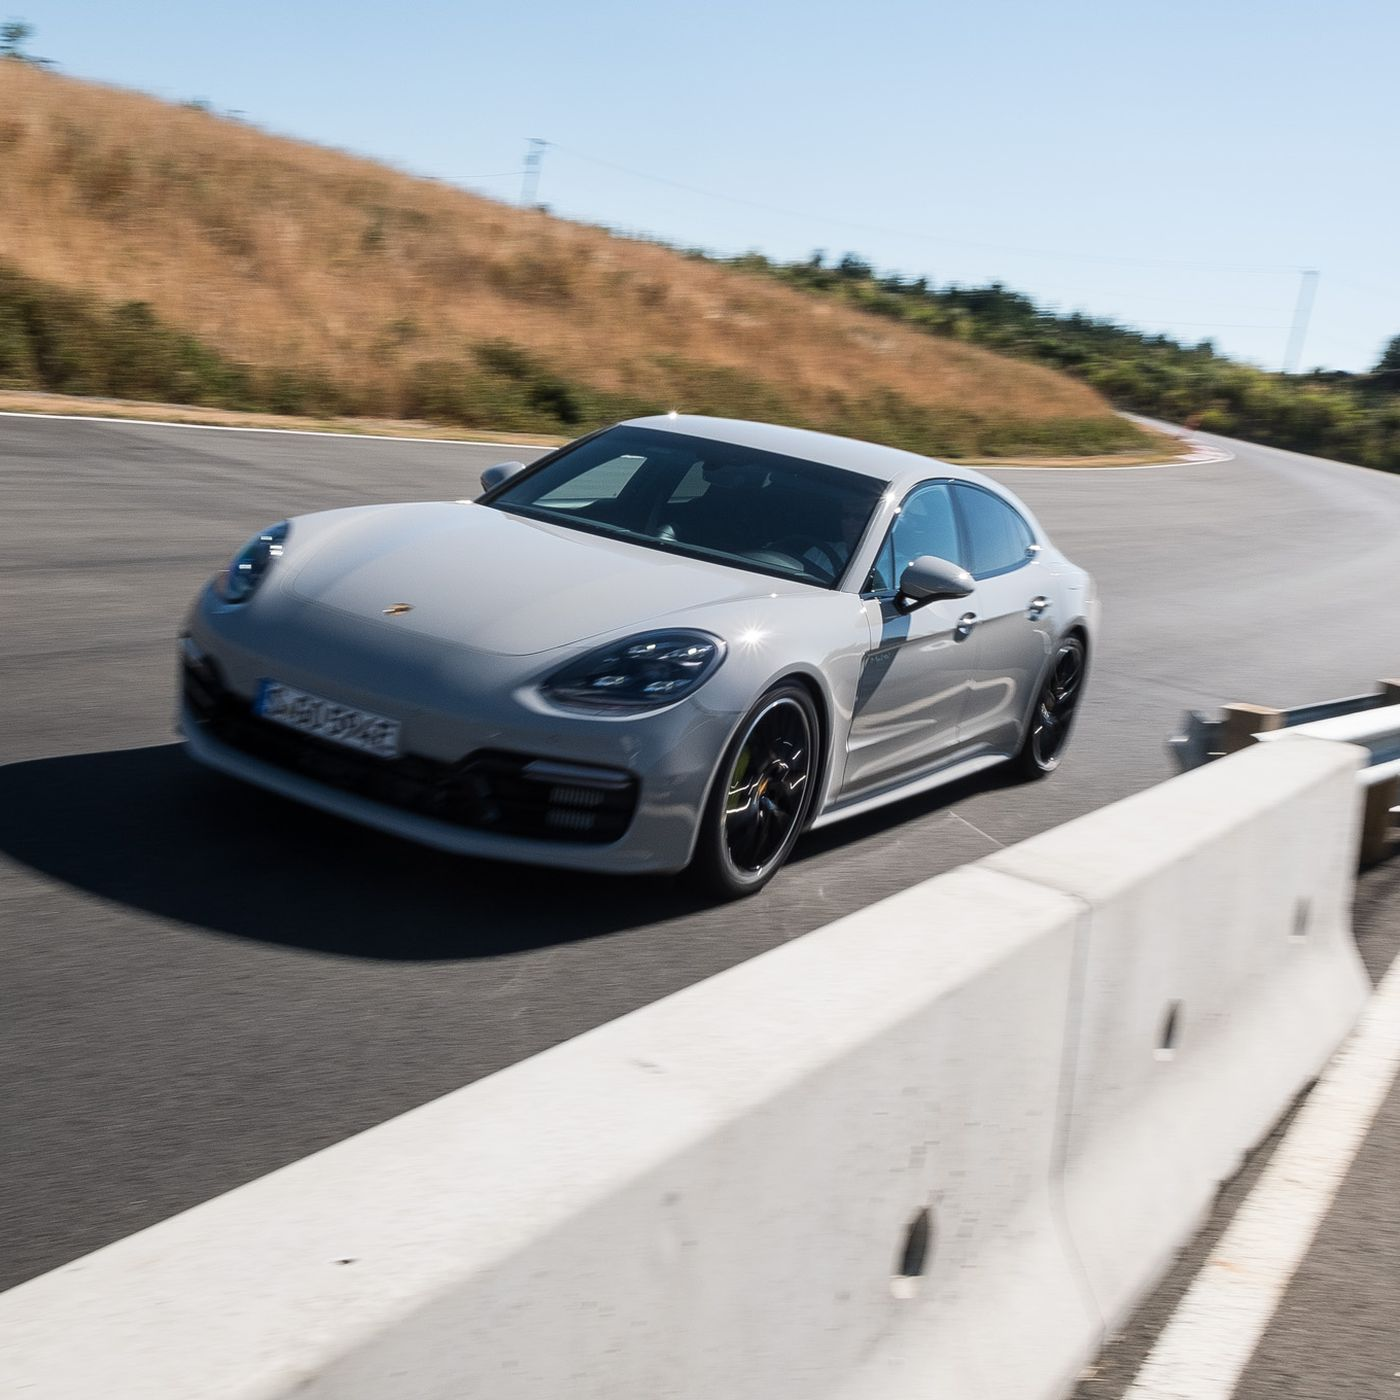 Porsche S Newest Hybrid Is Great On The Track And Even Better Road Verge